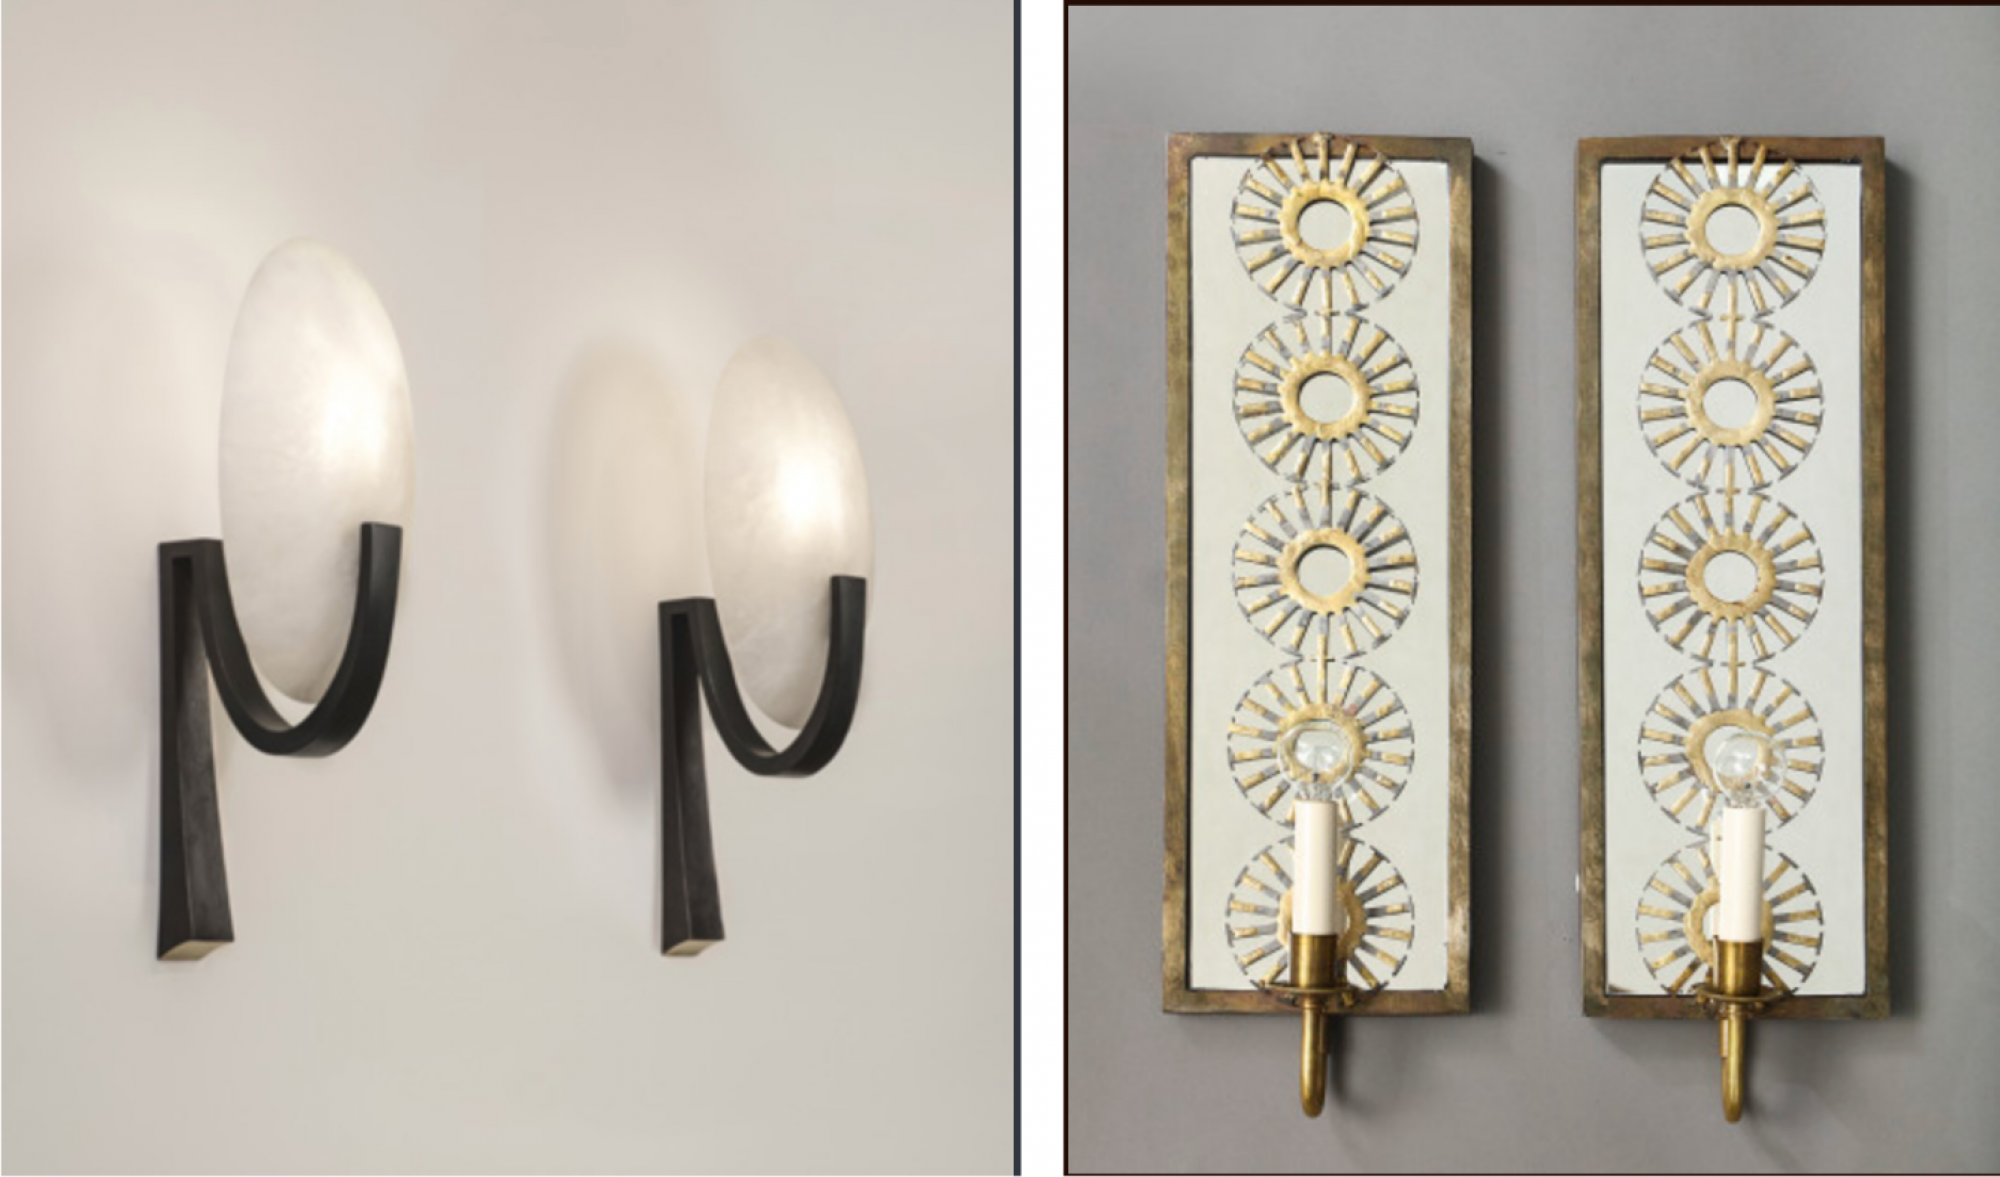 Sconces were a must in my lighting plan. Some of the options we considered were by Herve Van der Straeten and Marie Suri. (Images: Ralph Pucci and Liz O'Brien)